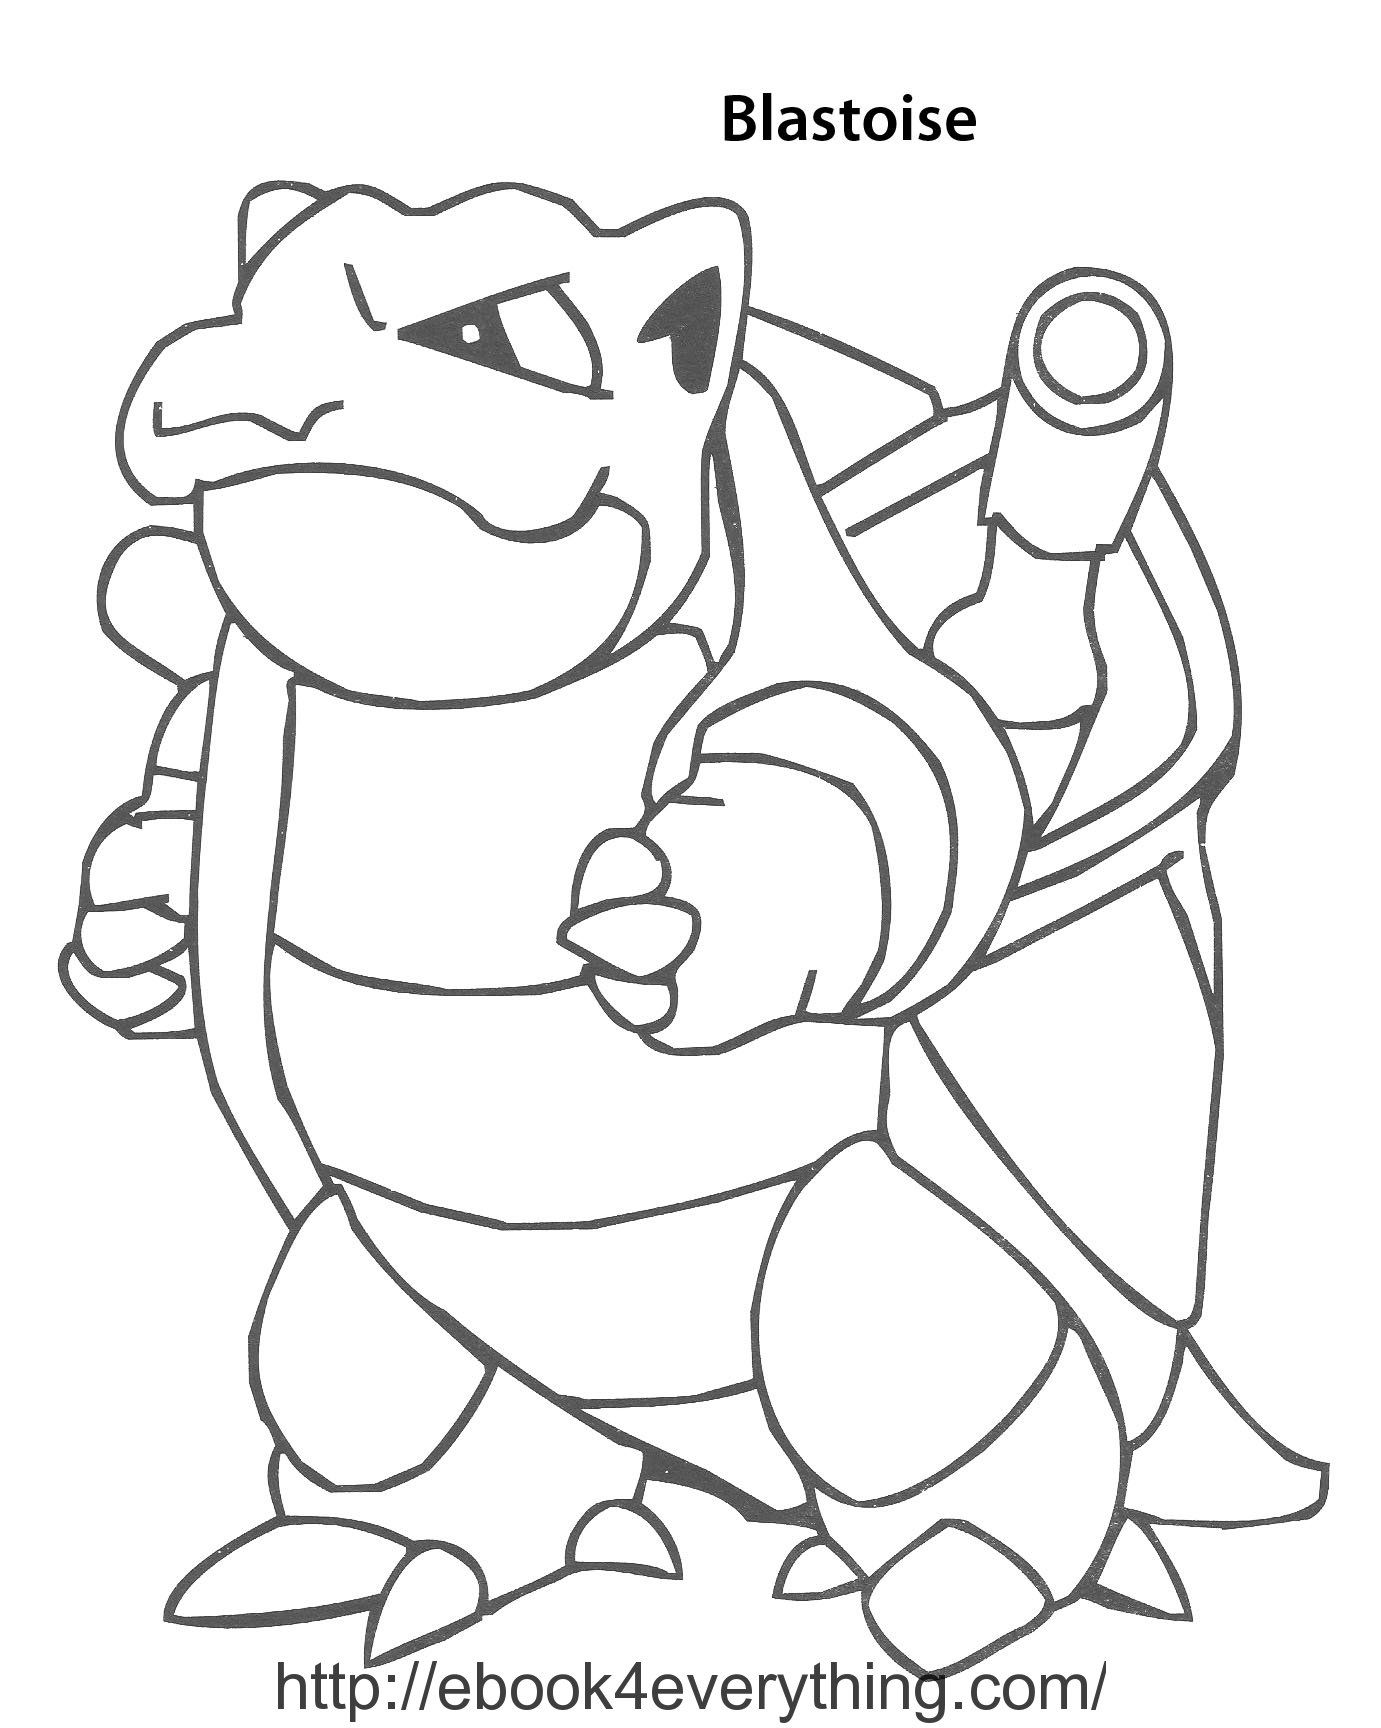 pokemon coloring pages of blastoise - photo#10